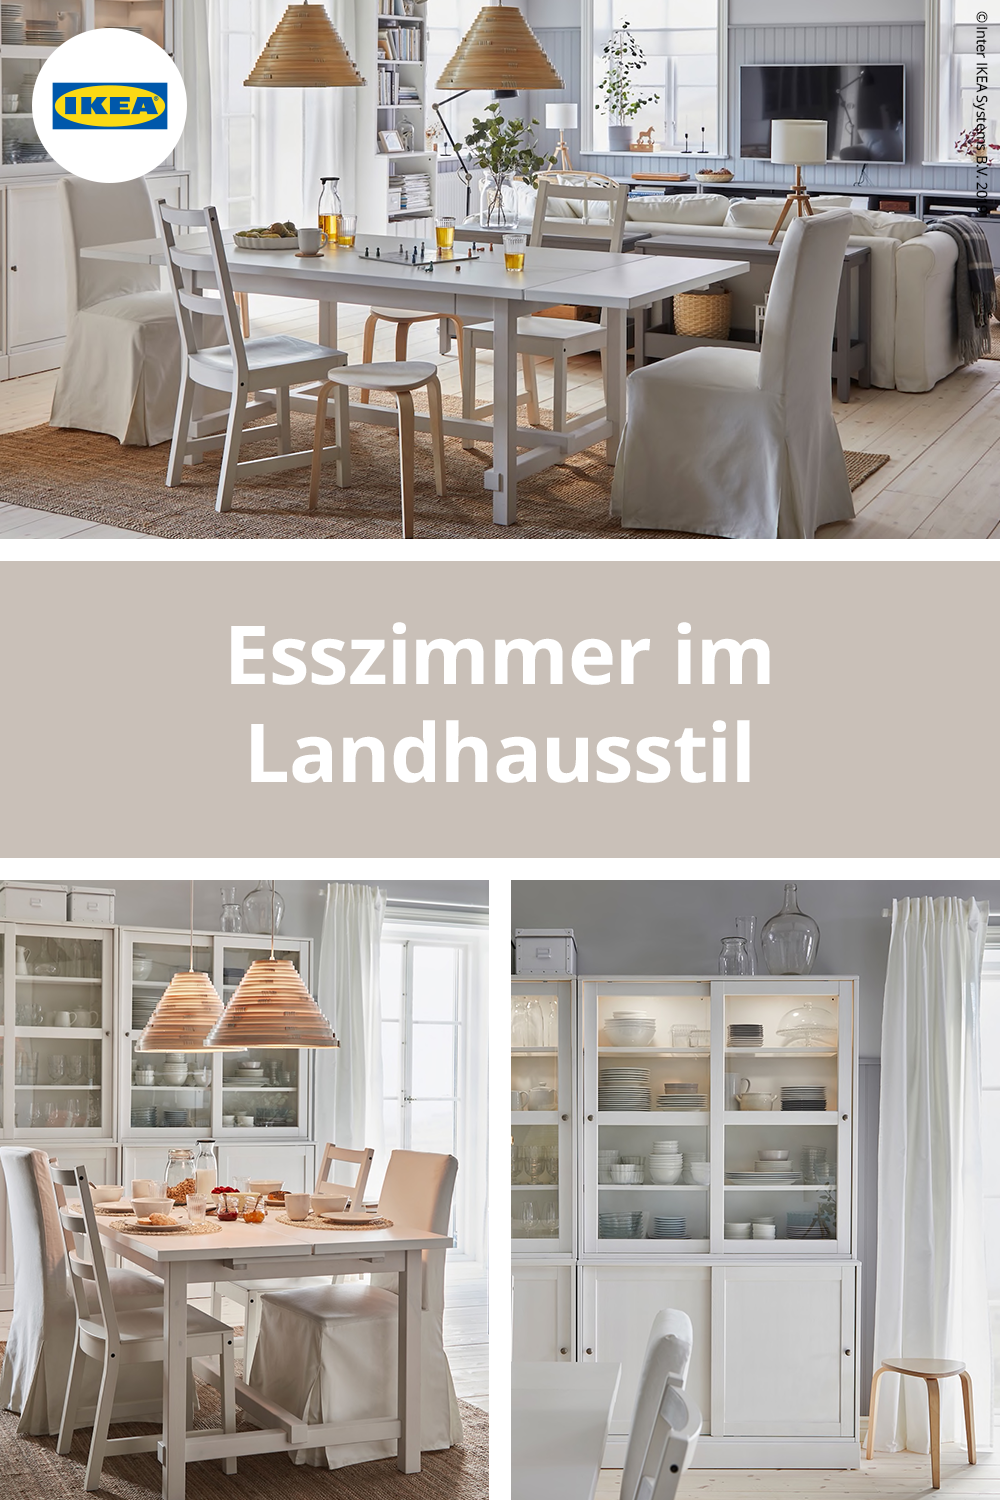 A bright dining room where dreams are shared IKEA Deutschland